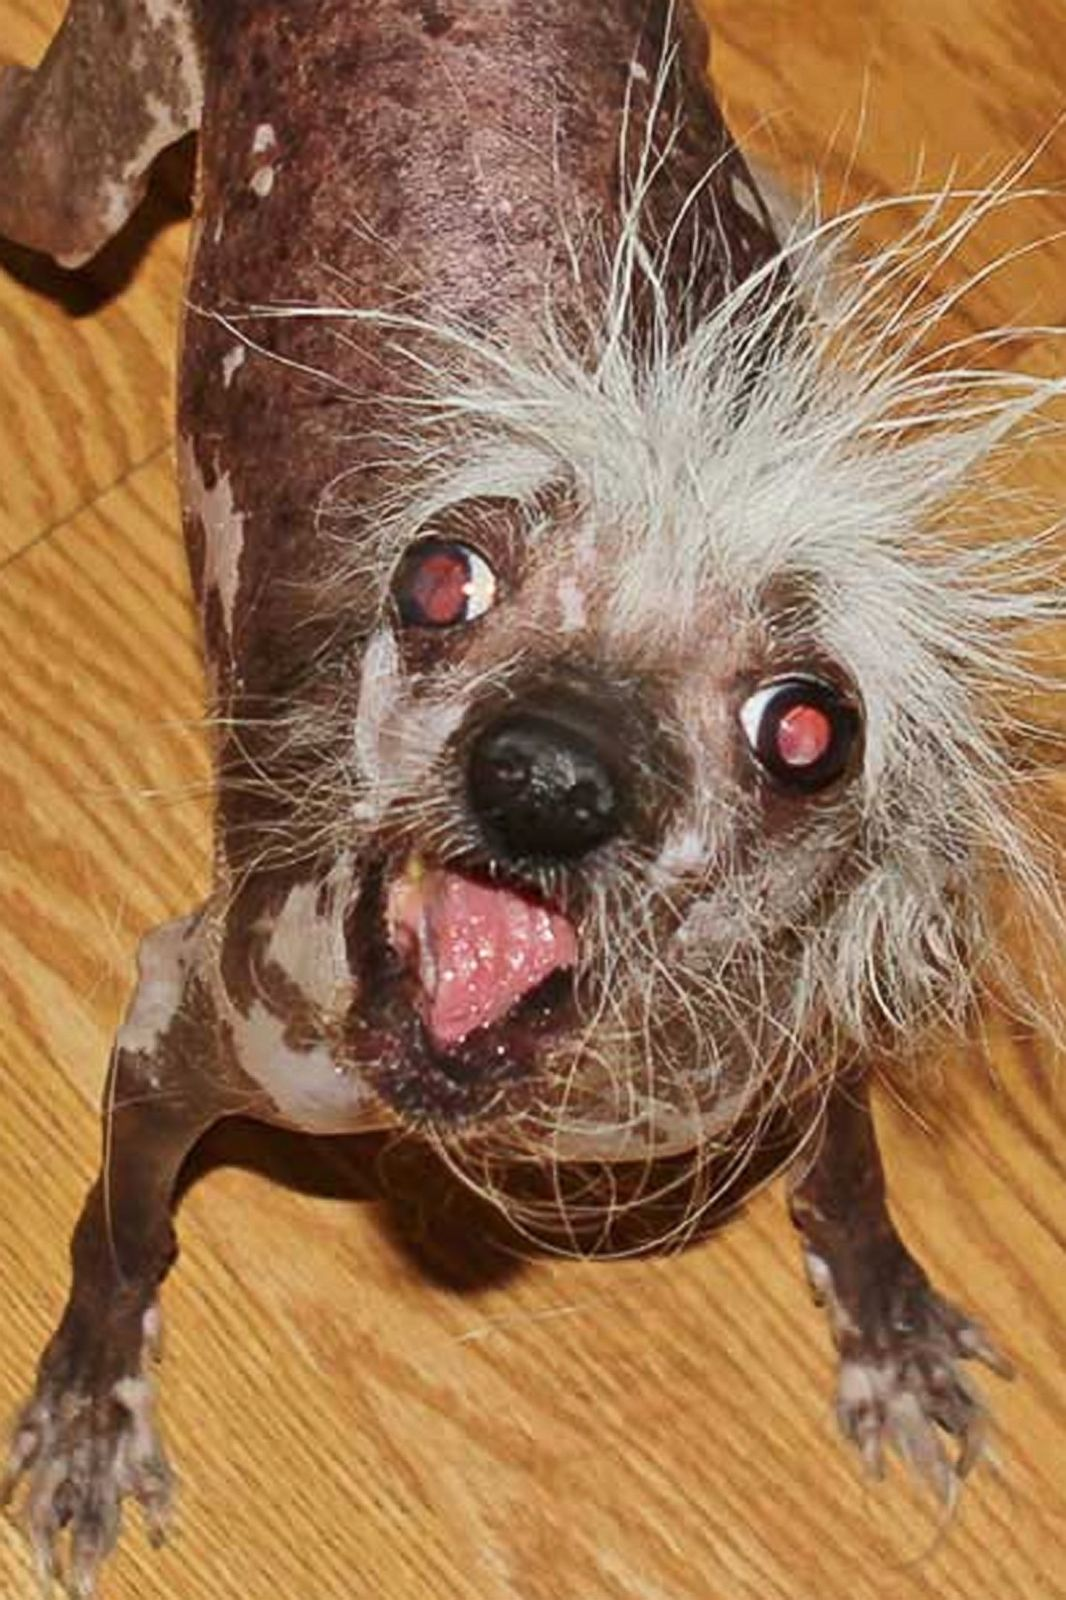 Meet the 'World's Ugliest Dog' Photos | Image #12 - ABC News